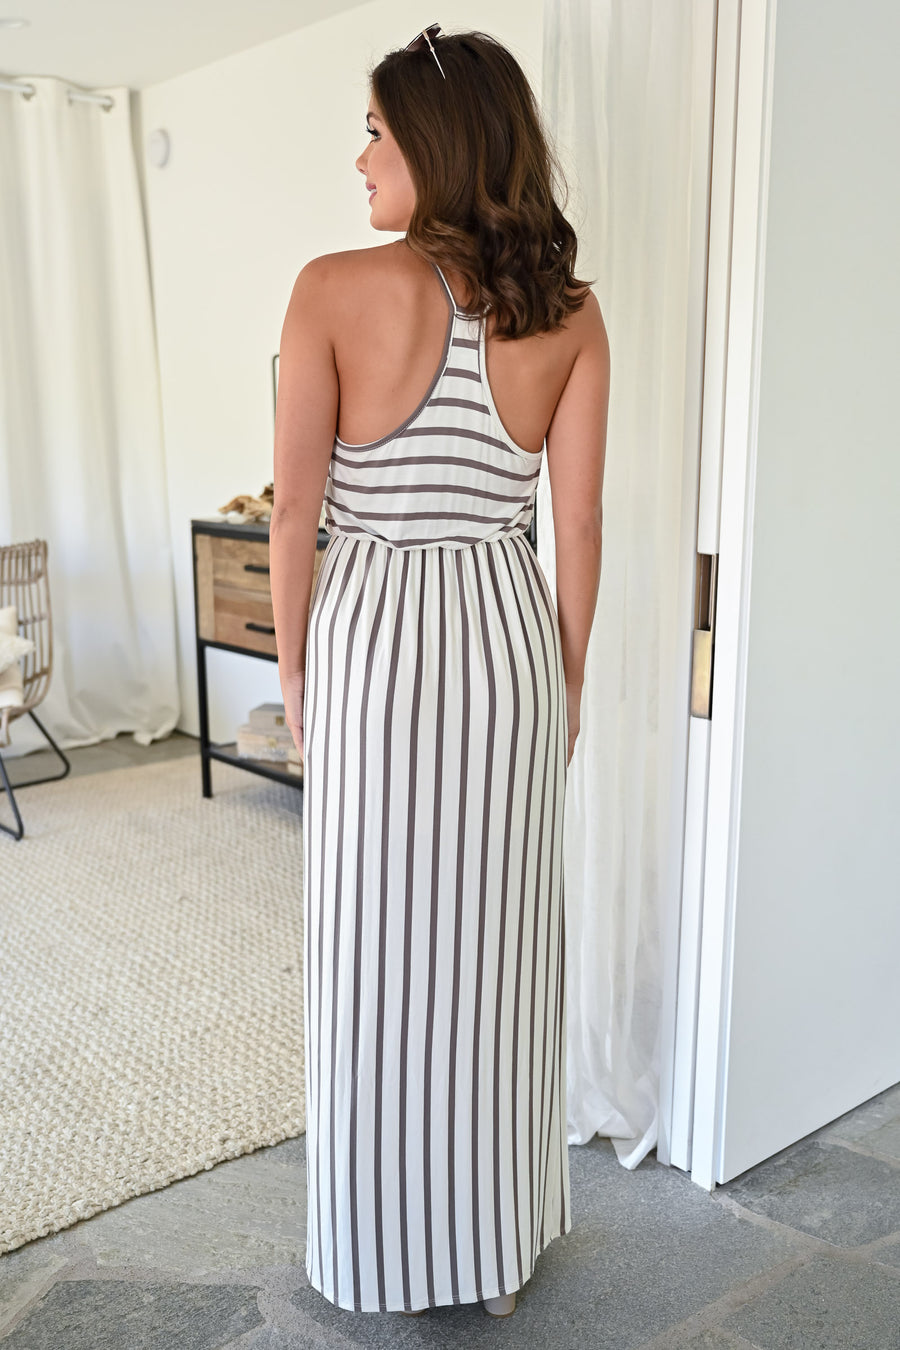 Moving On Up Maxi Dress - Ivory womens casual striped scoop neck long dress closet candy  front 2